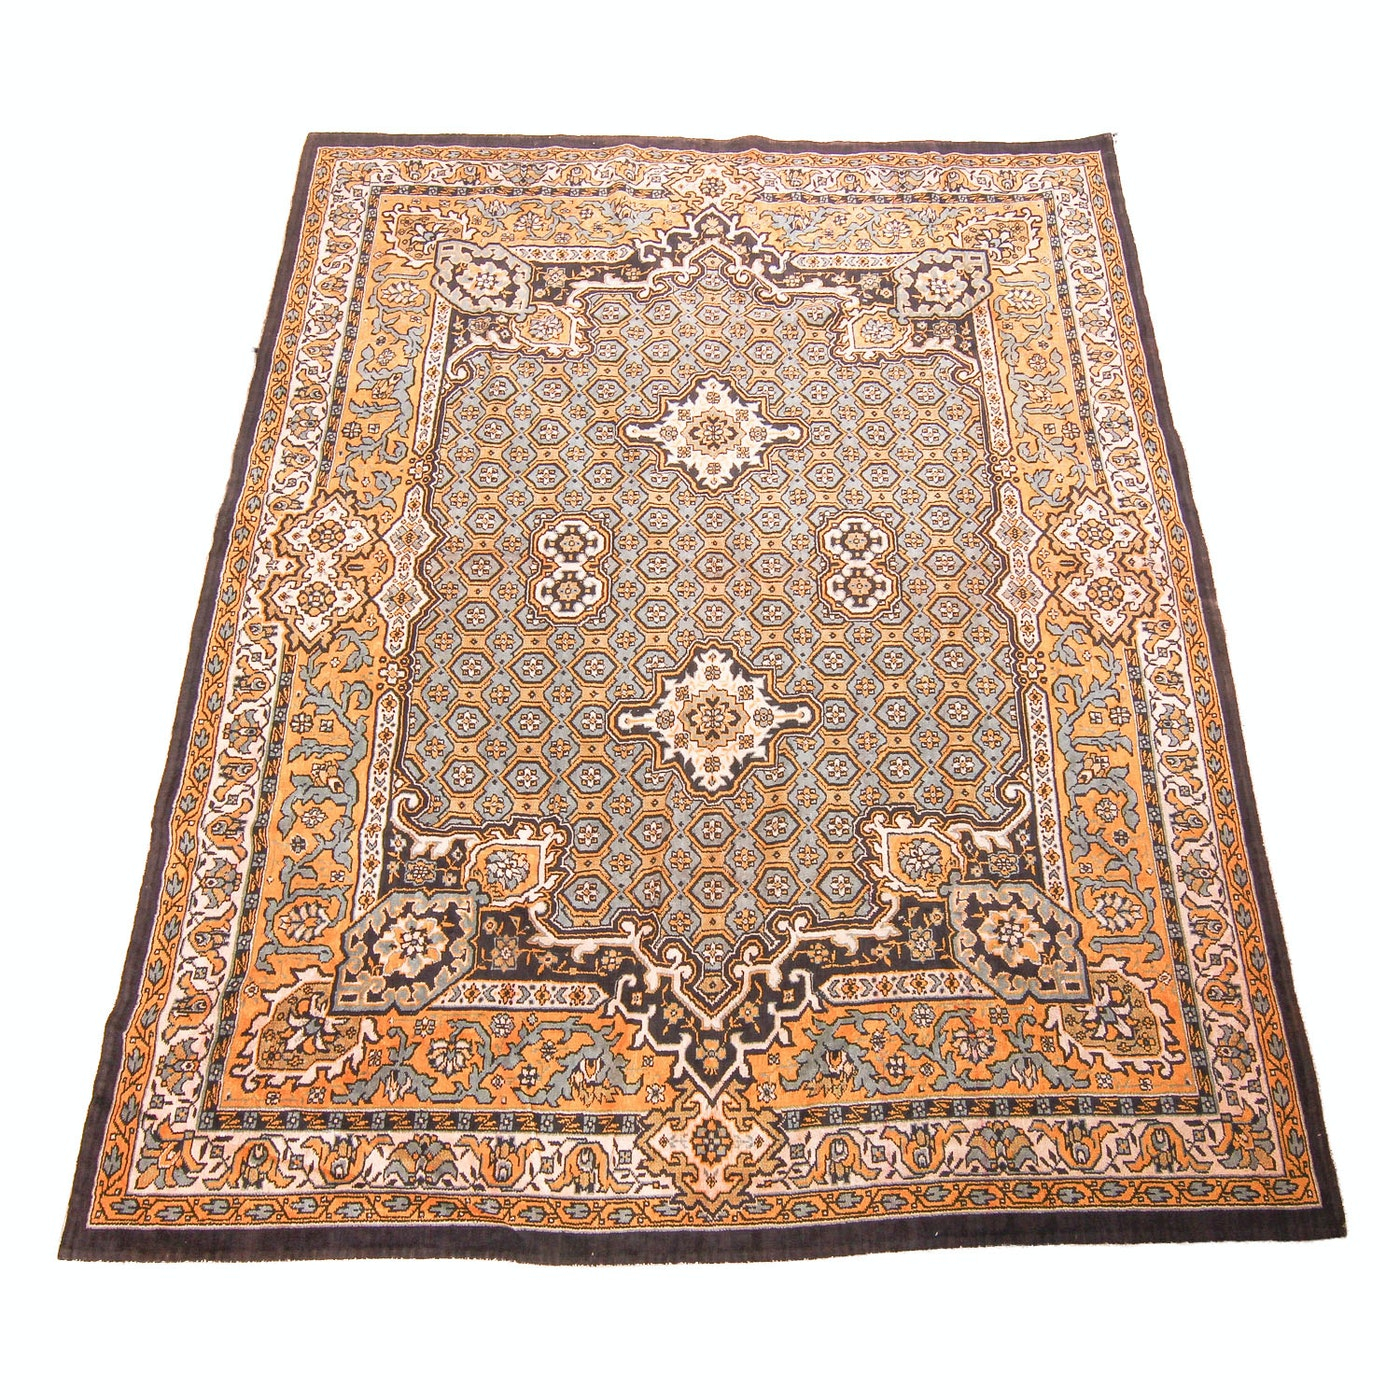 Power loomed vintage persian style area rug ebth for Vintage style area rugs